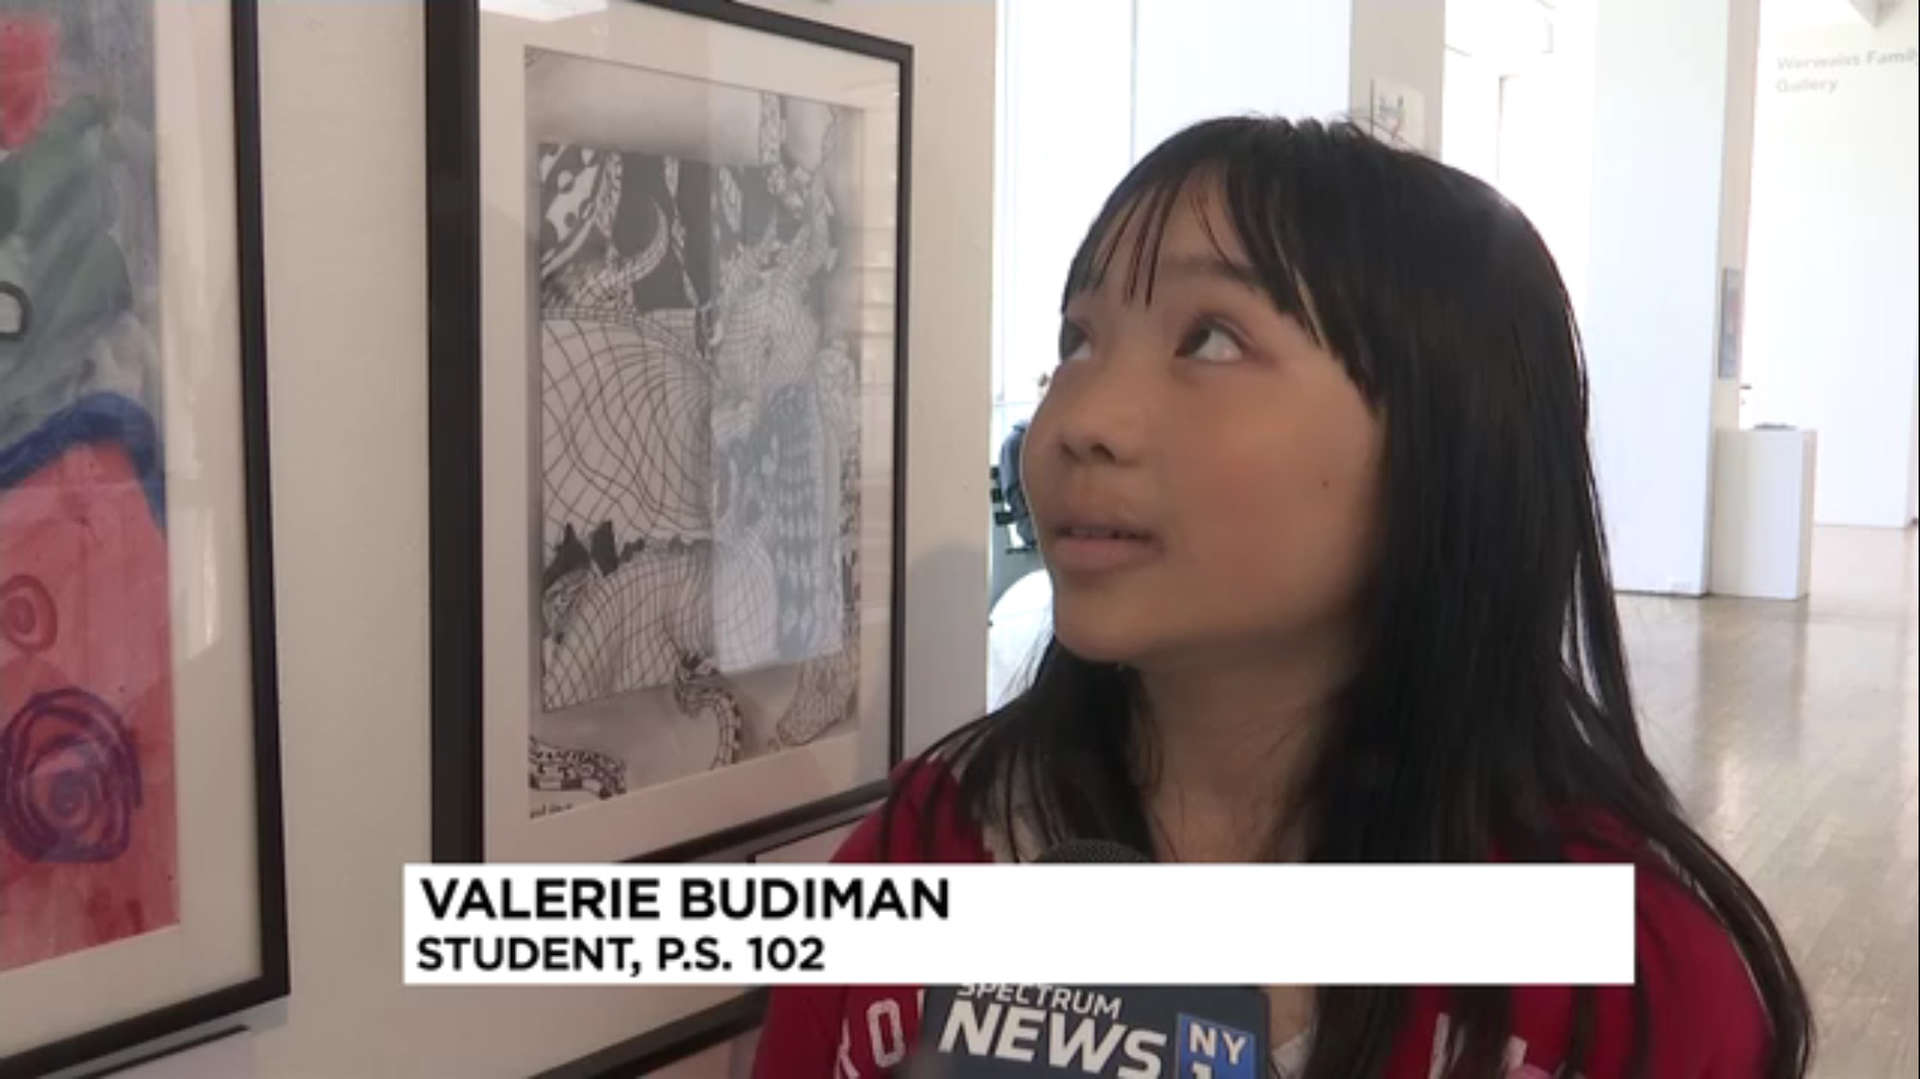 Student Valerie Budiman at the Queens Museum